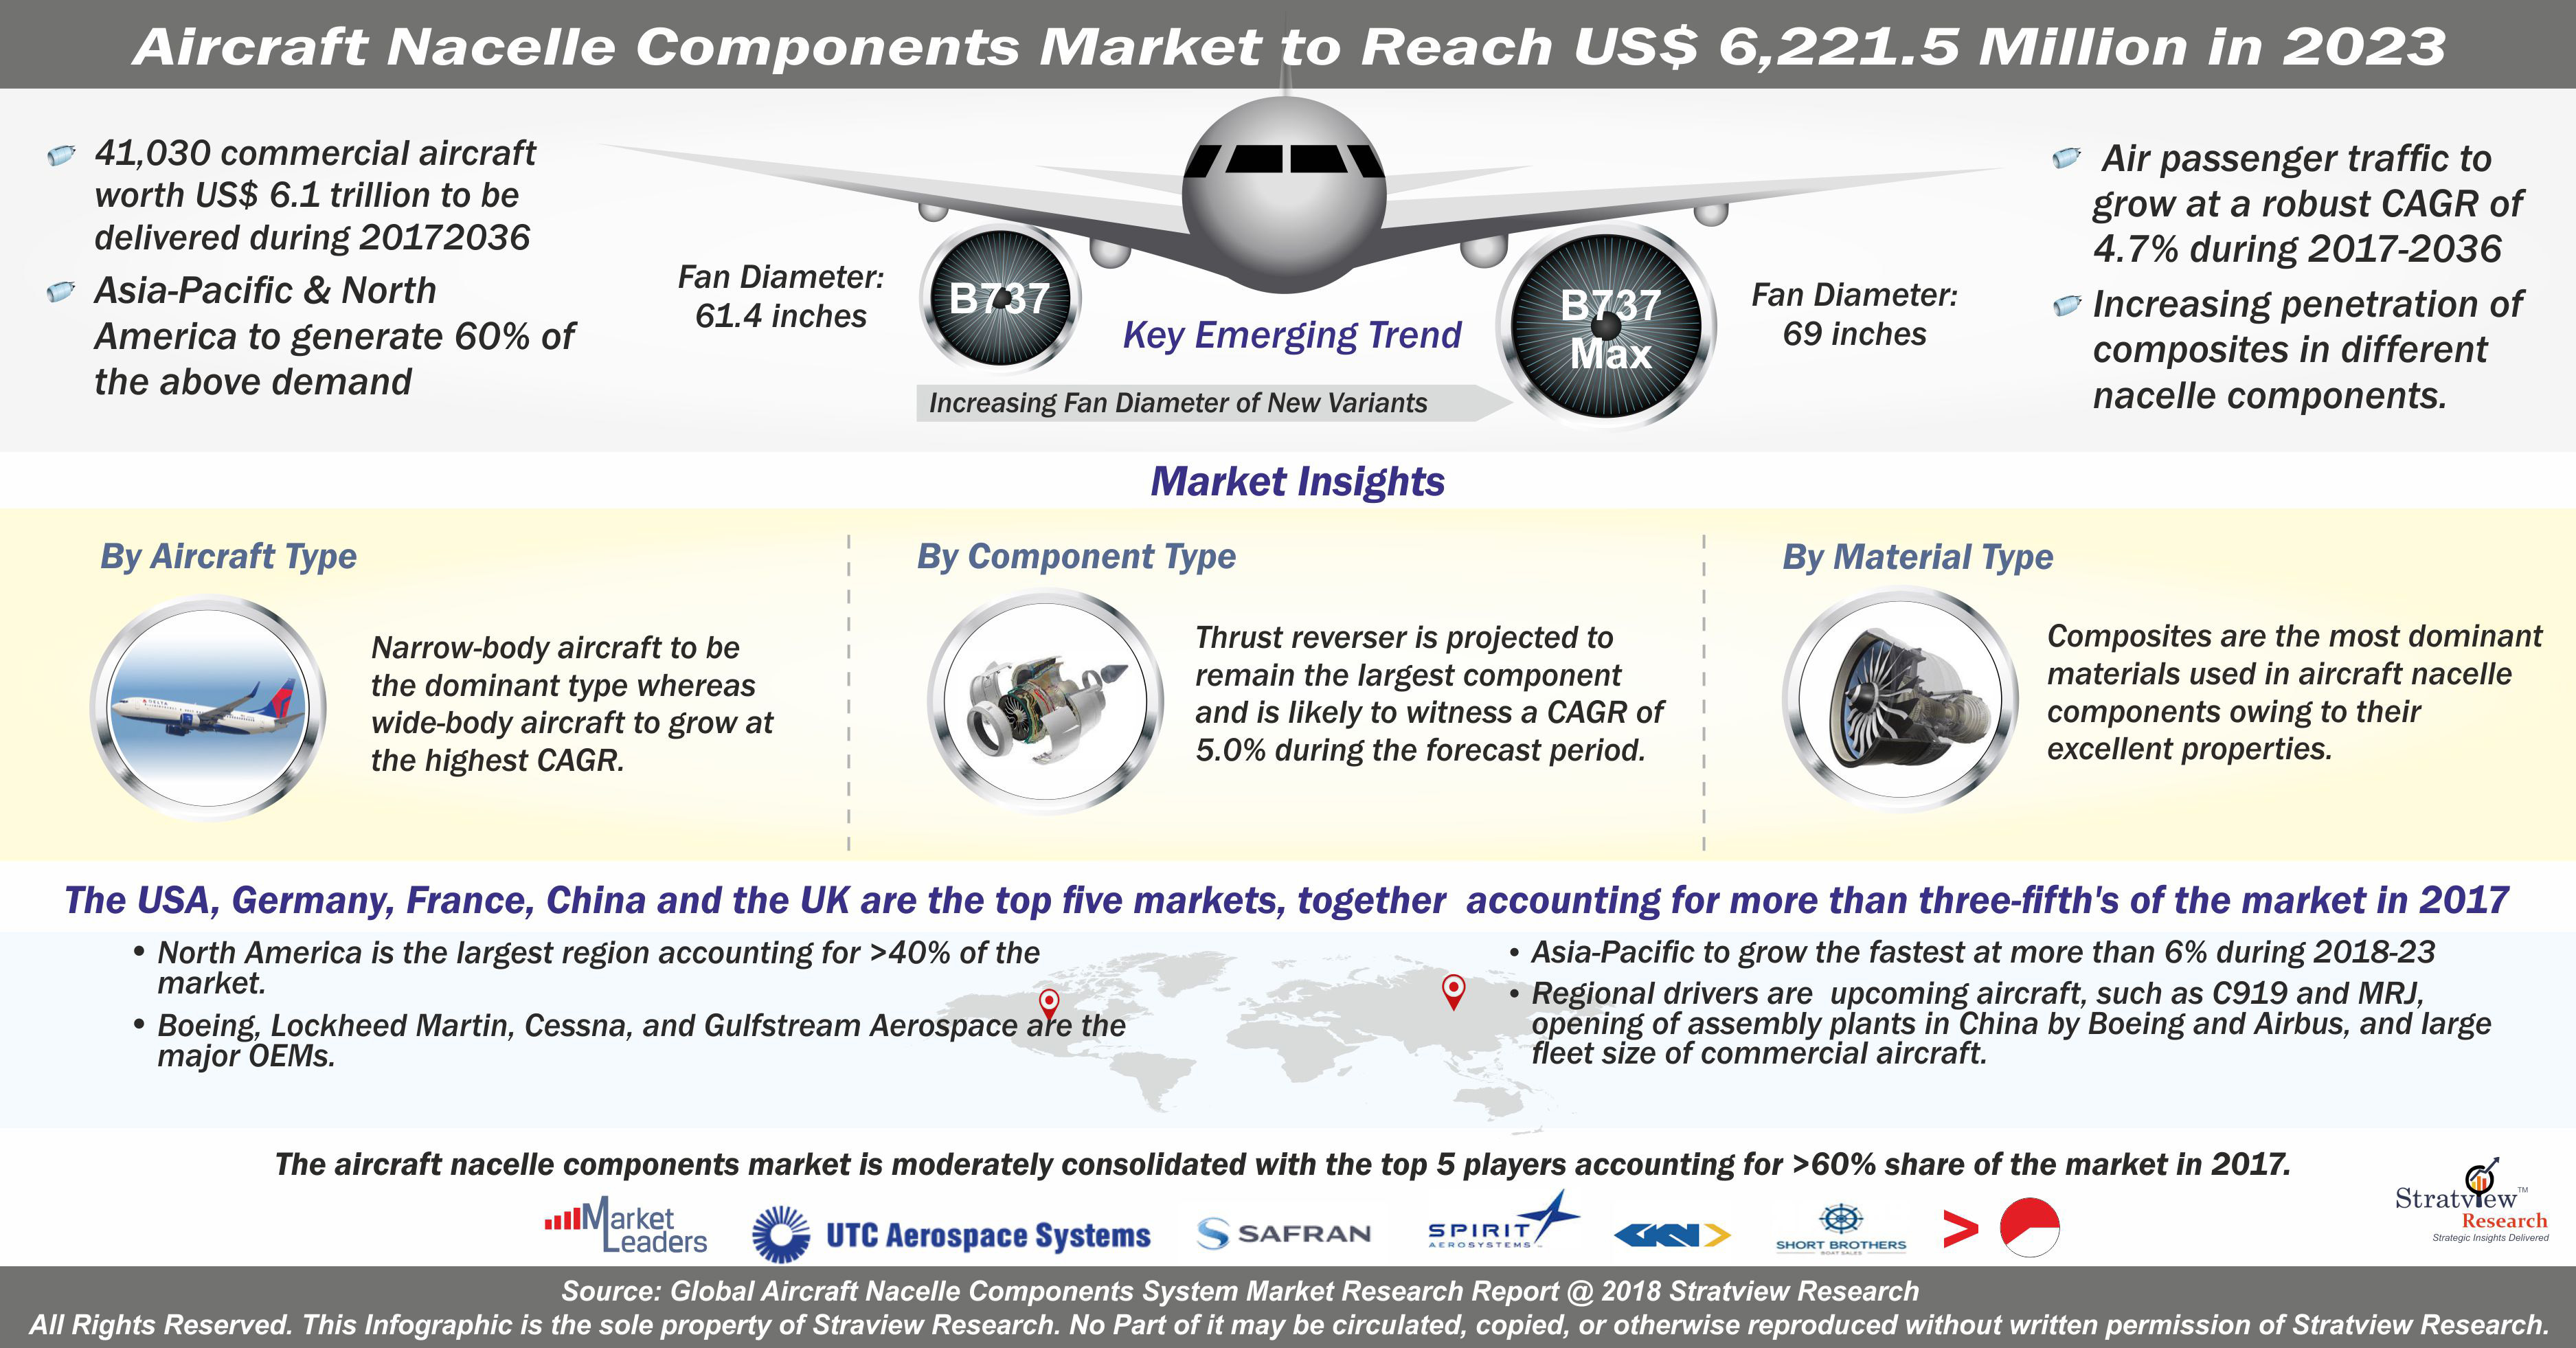 Aircraft Nacelle Components Market